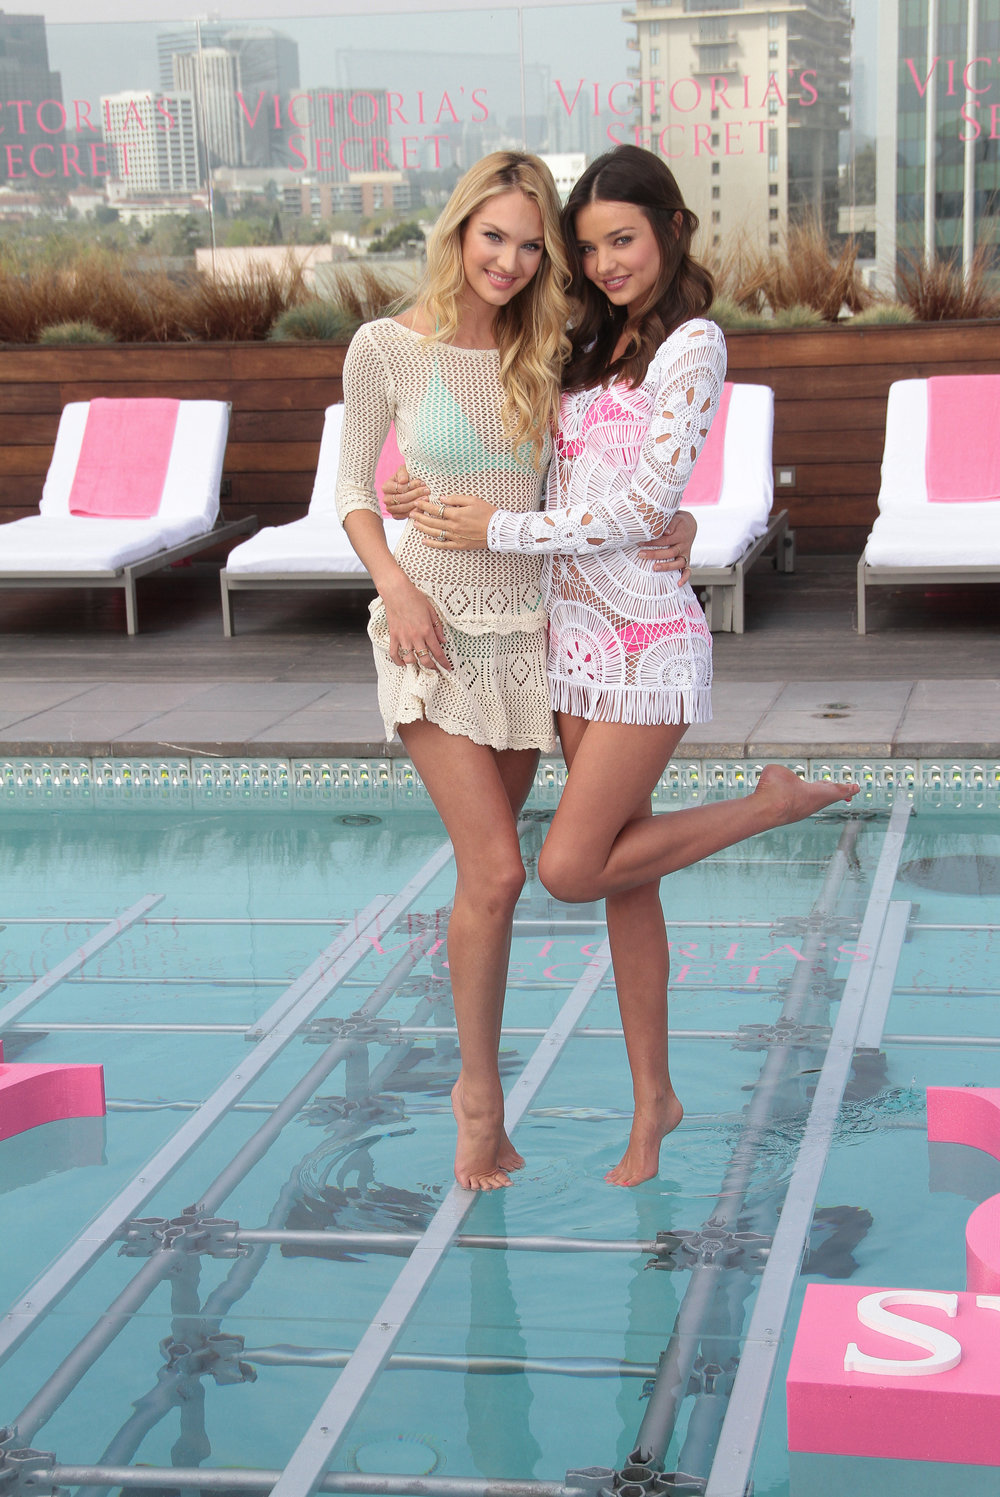 Miranda-Kerr-Candice-Swanepoel-Victorias-Secret-SWIM-Collection-Launch-in-NY-March-29-2012-Photo-7.jpg